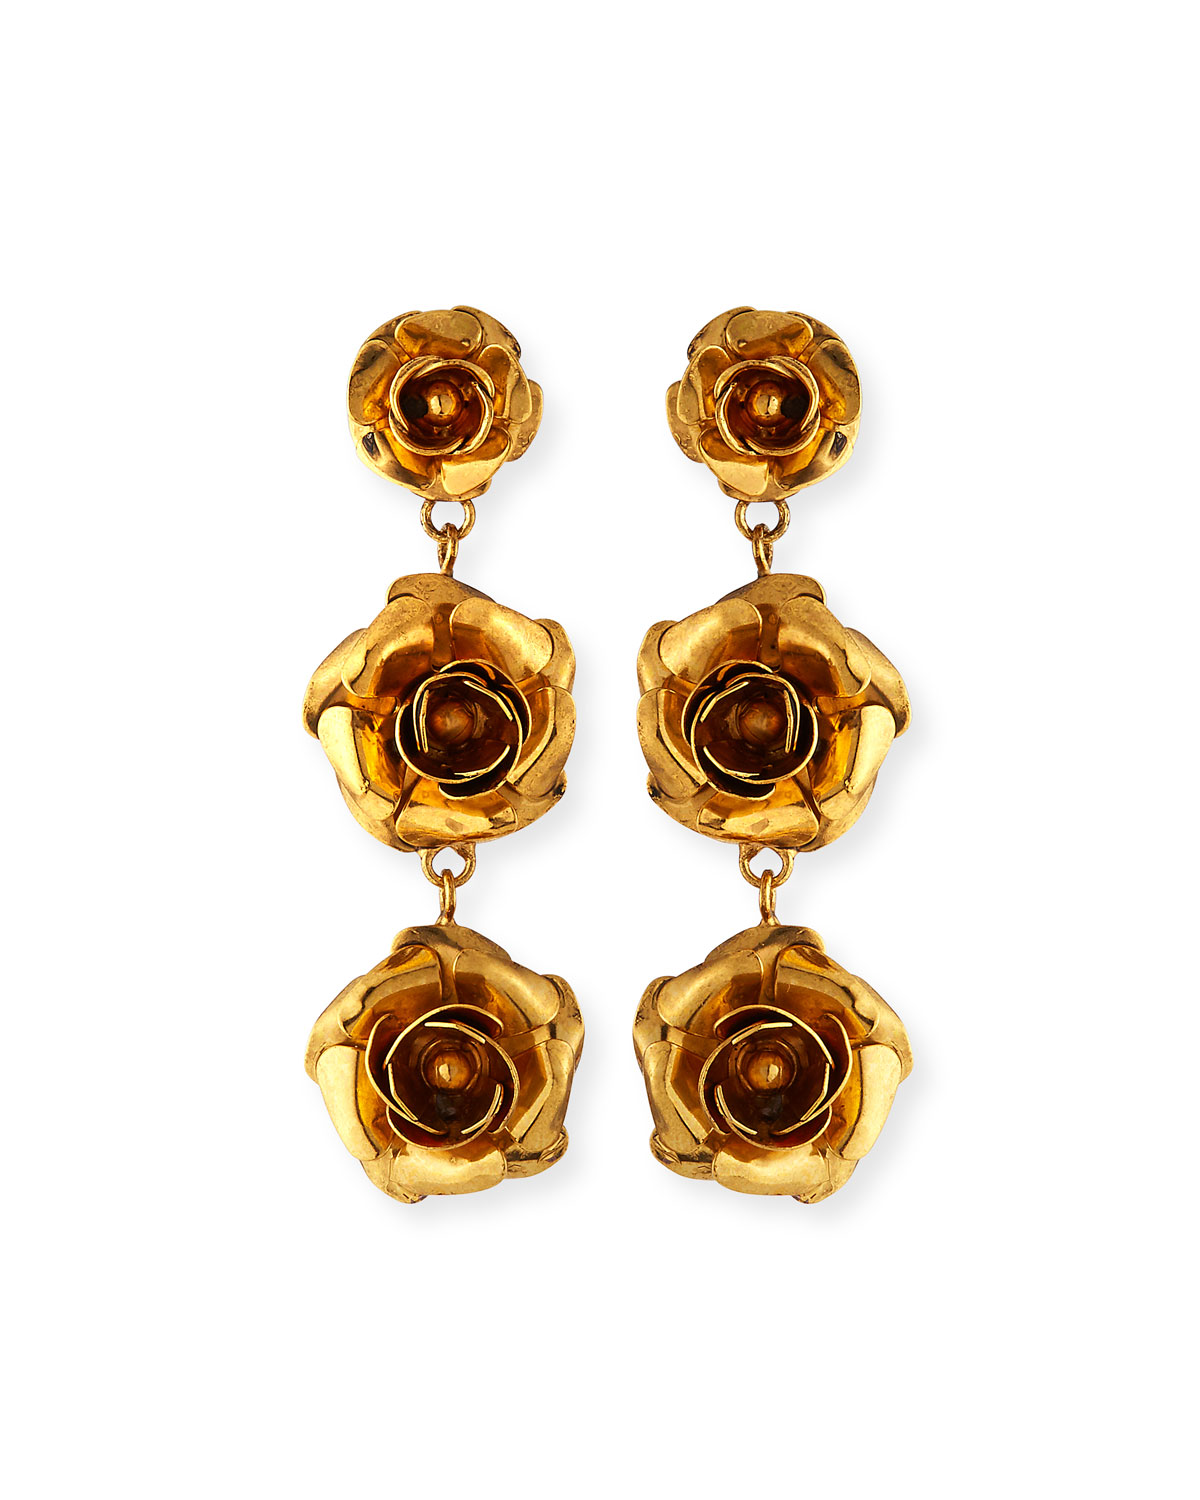 Jennifer Behr Accessories ABIGAIL ROSE-DROP EARRINGS